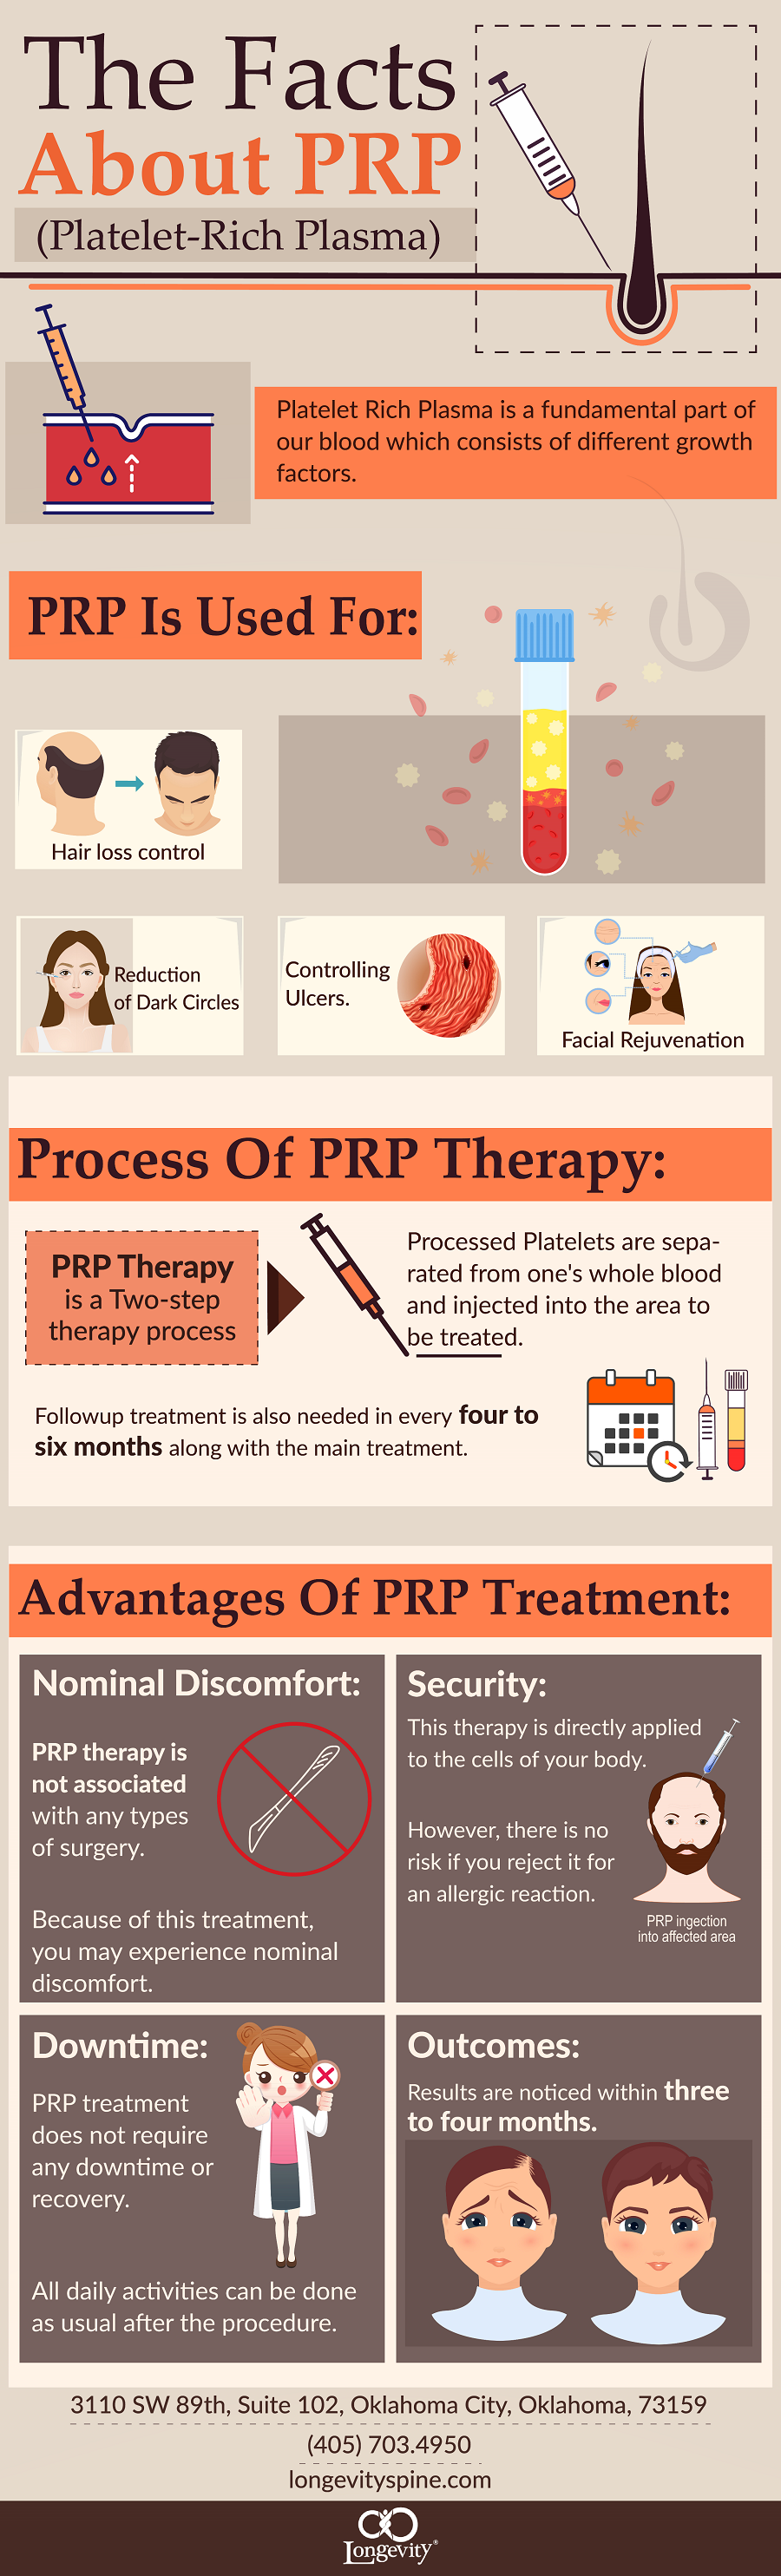 The Facts About PRP #infographic